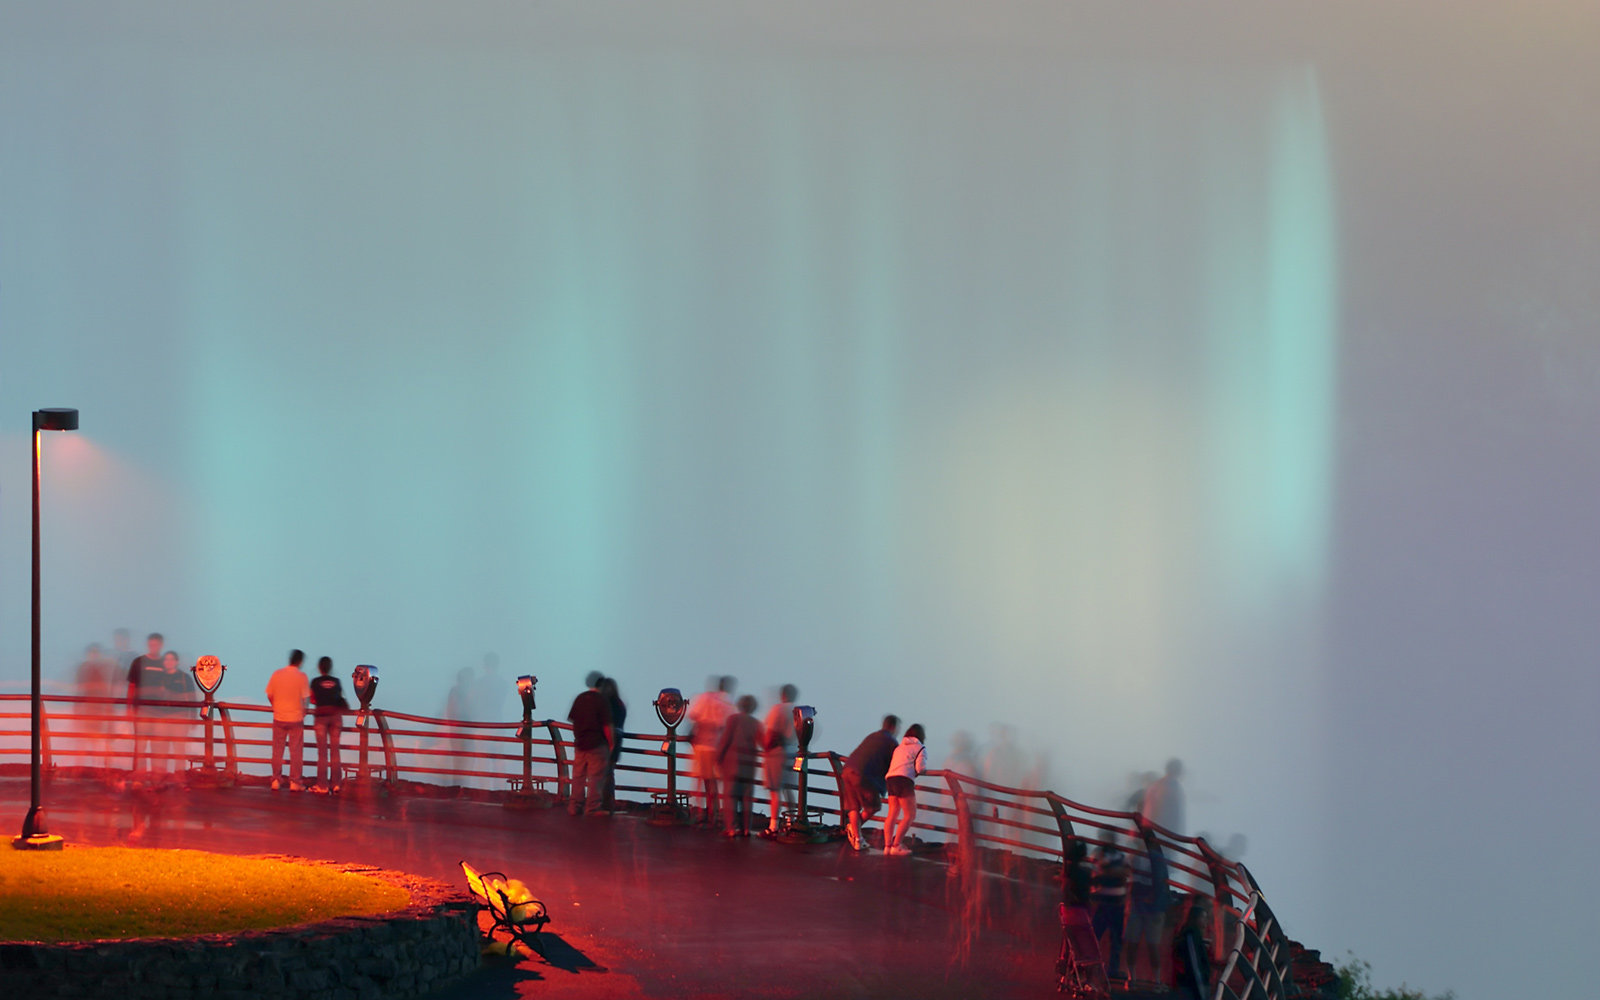 Niagara Falls, People, Neon Lights